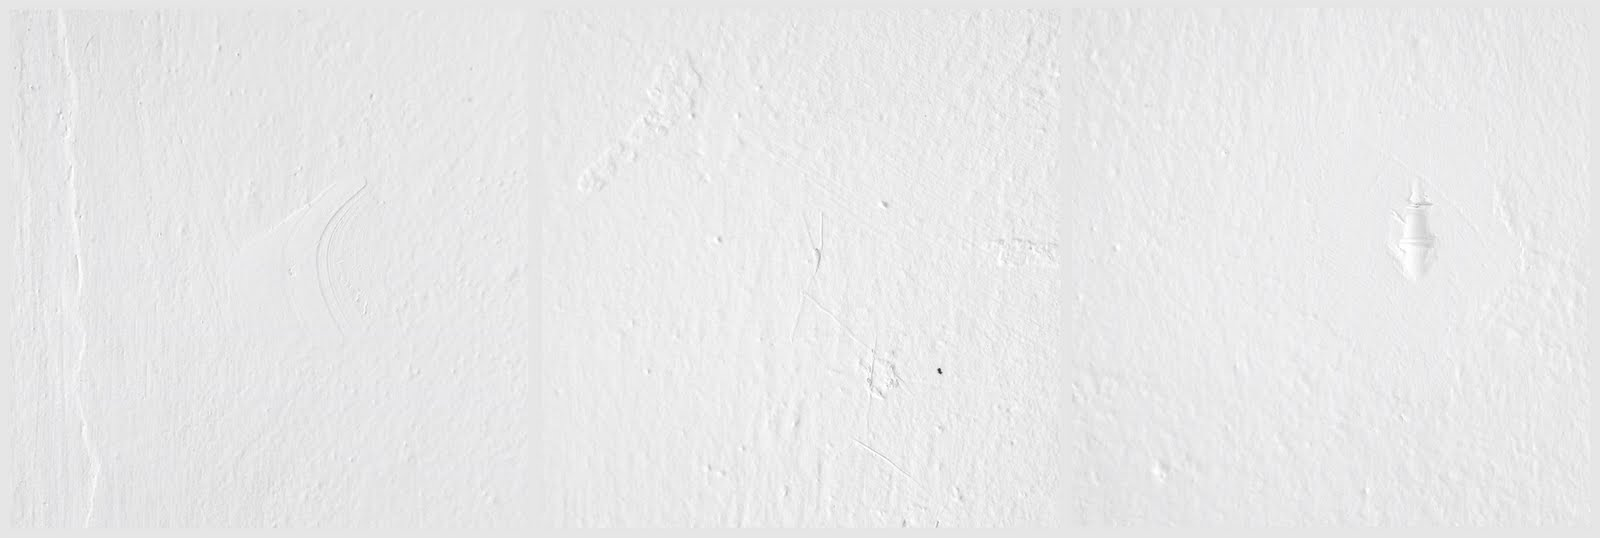 The White Wall